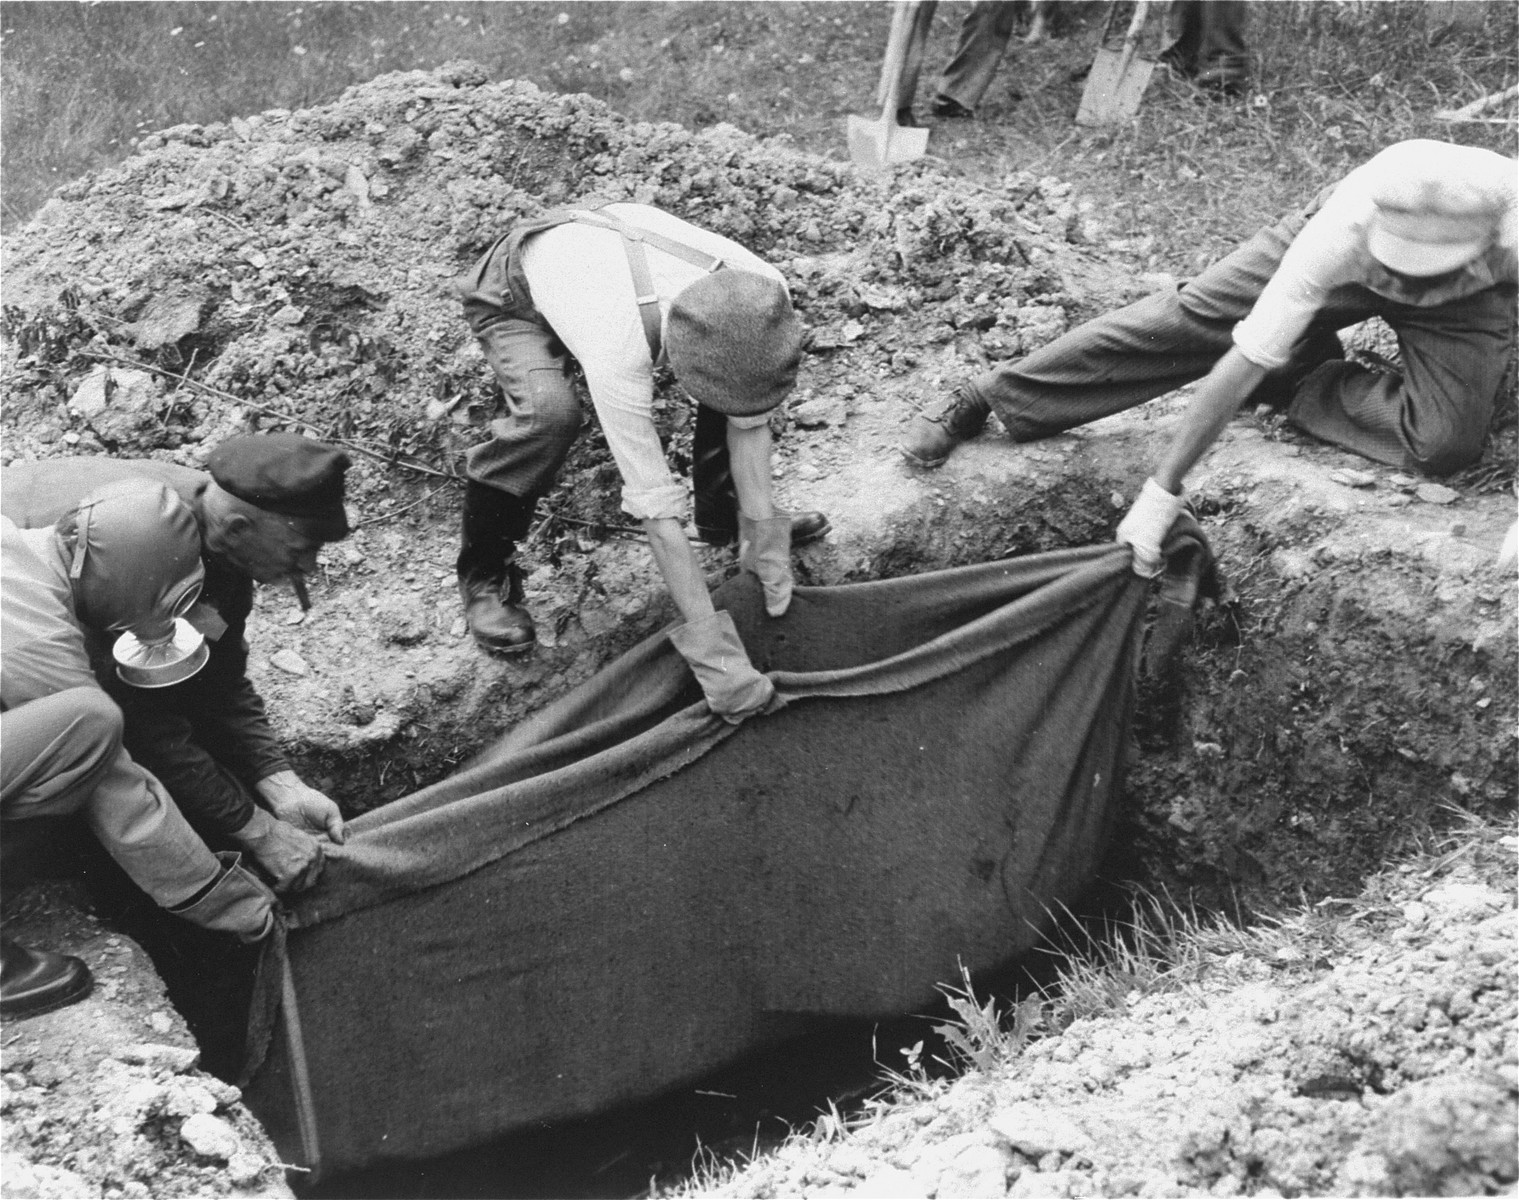 The exhumation of a grave near the Natzweiler-Struthof concentration camp.